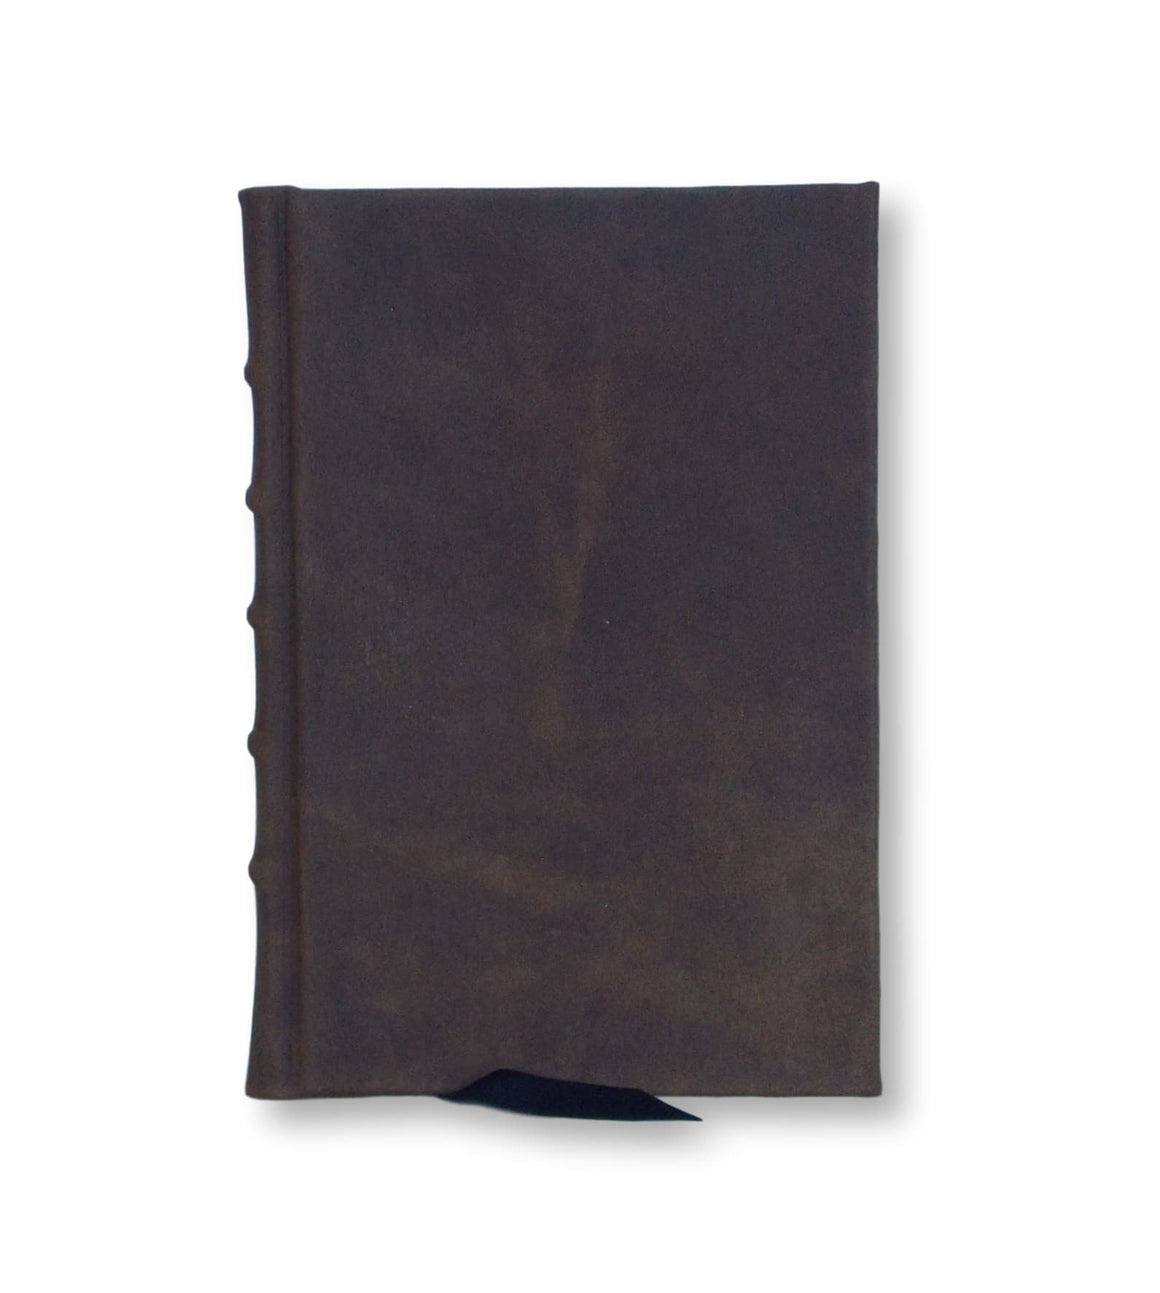 Aged Italian Goatskin Journal